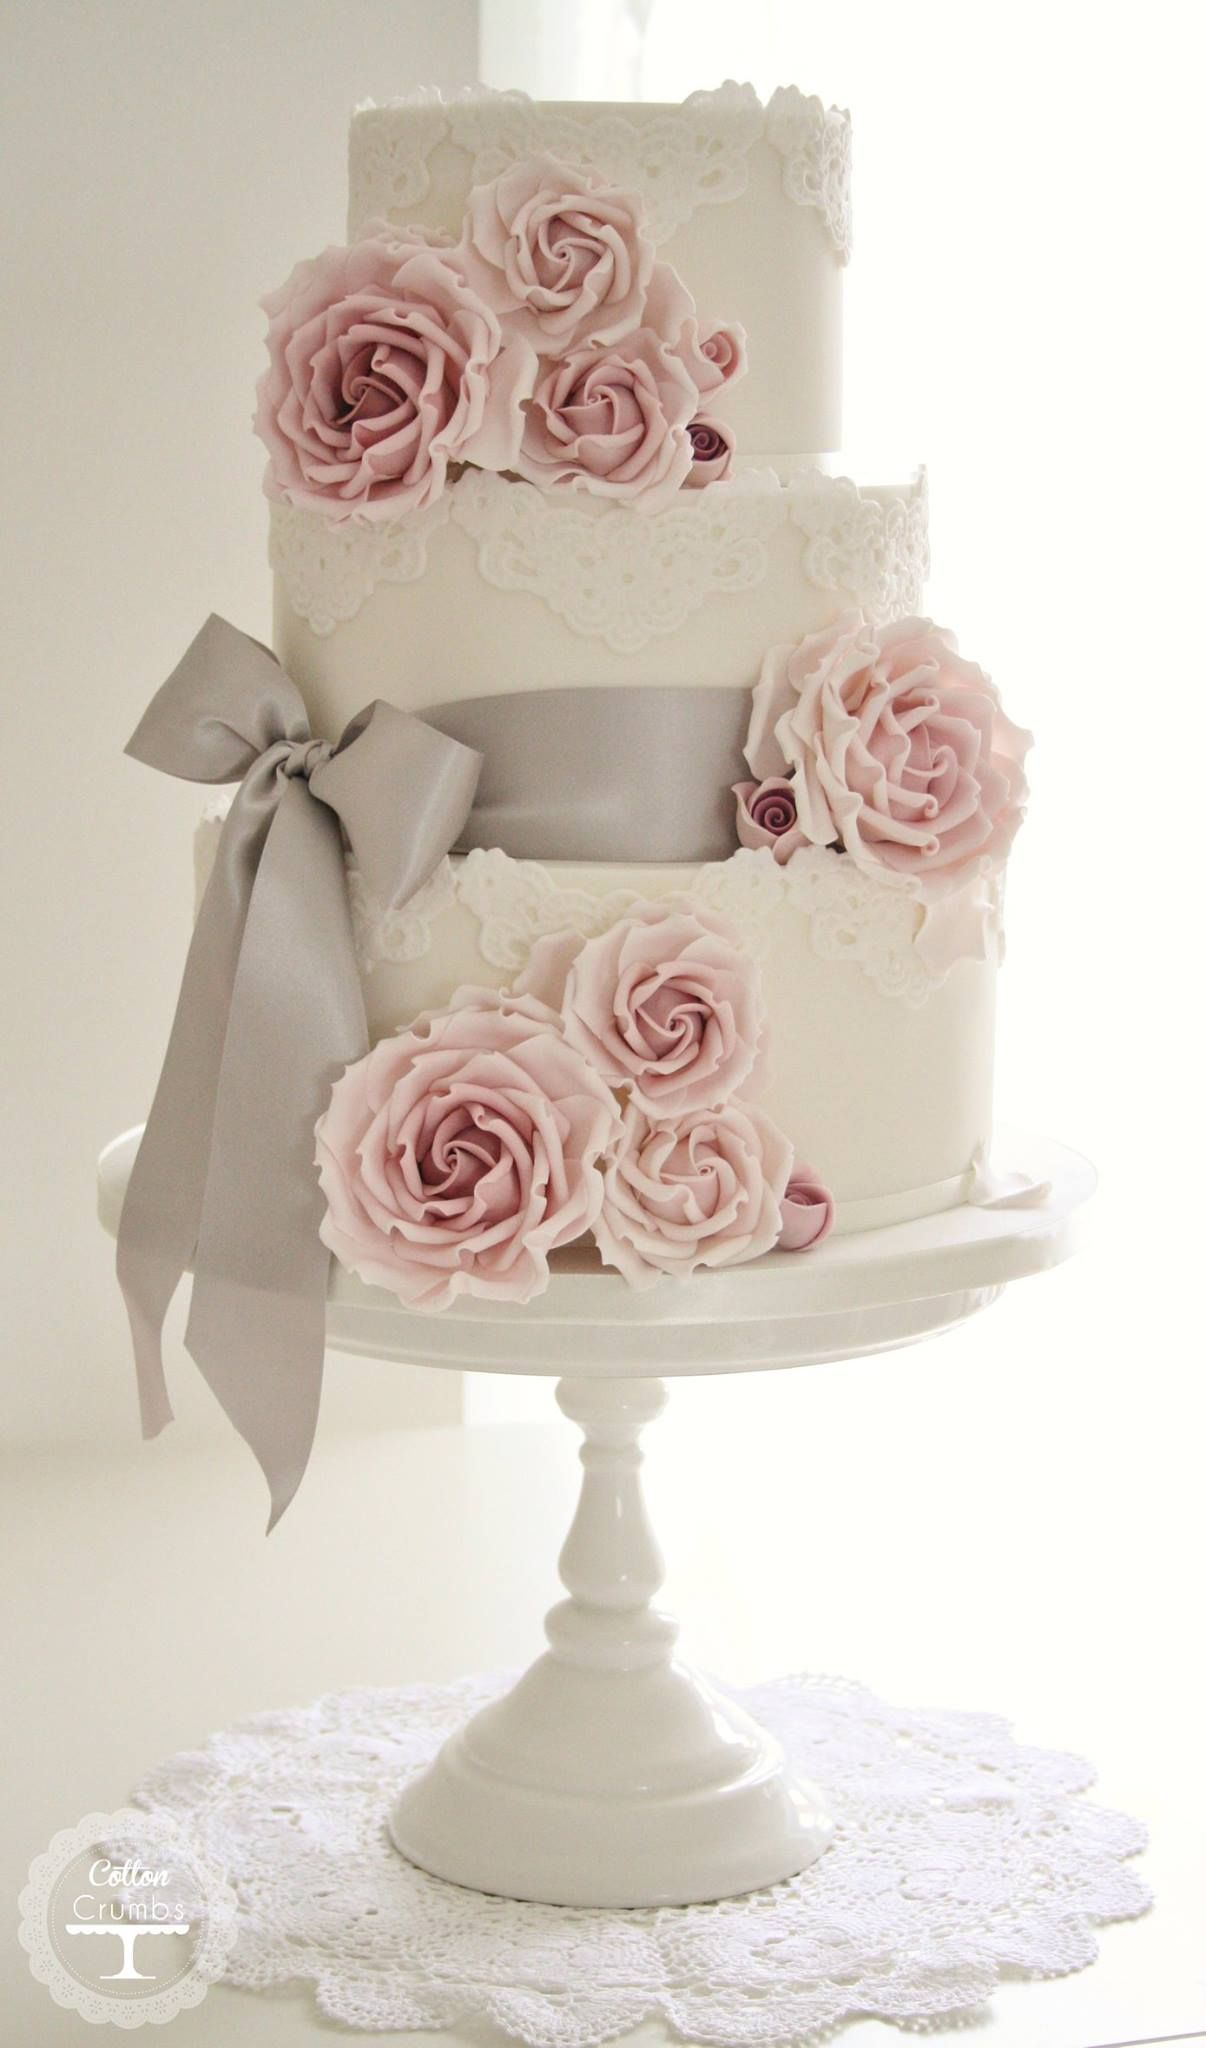 Wedding Cakes With Exceptional Details | Pinterest | Wedding cake ...